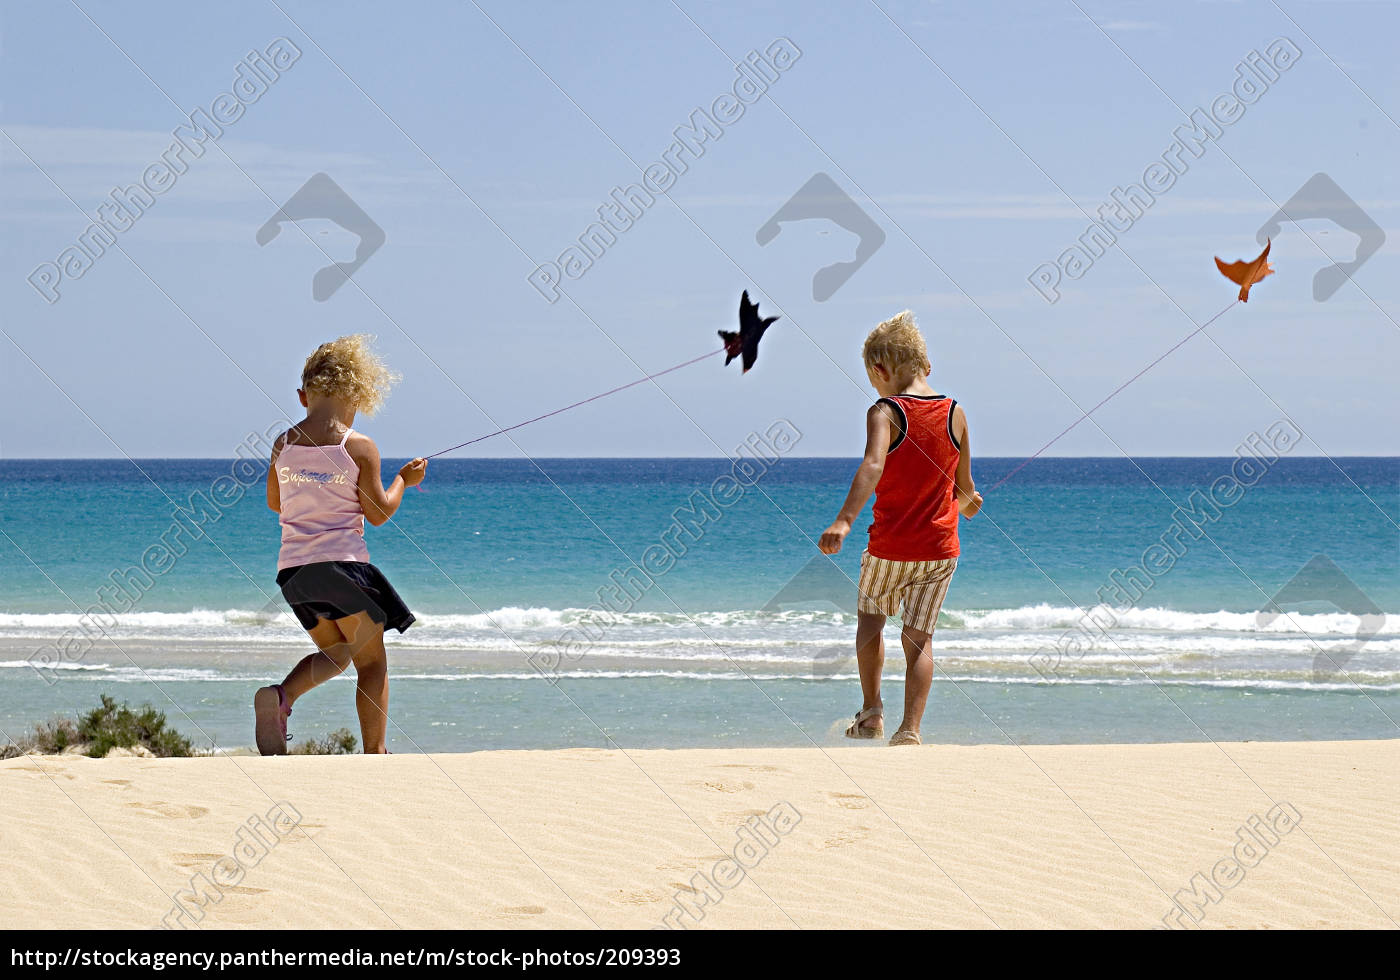 small, kites, at, the, beach - 209393